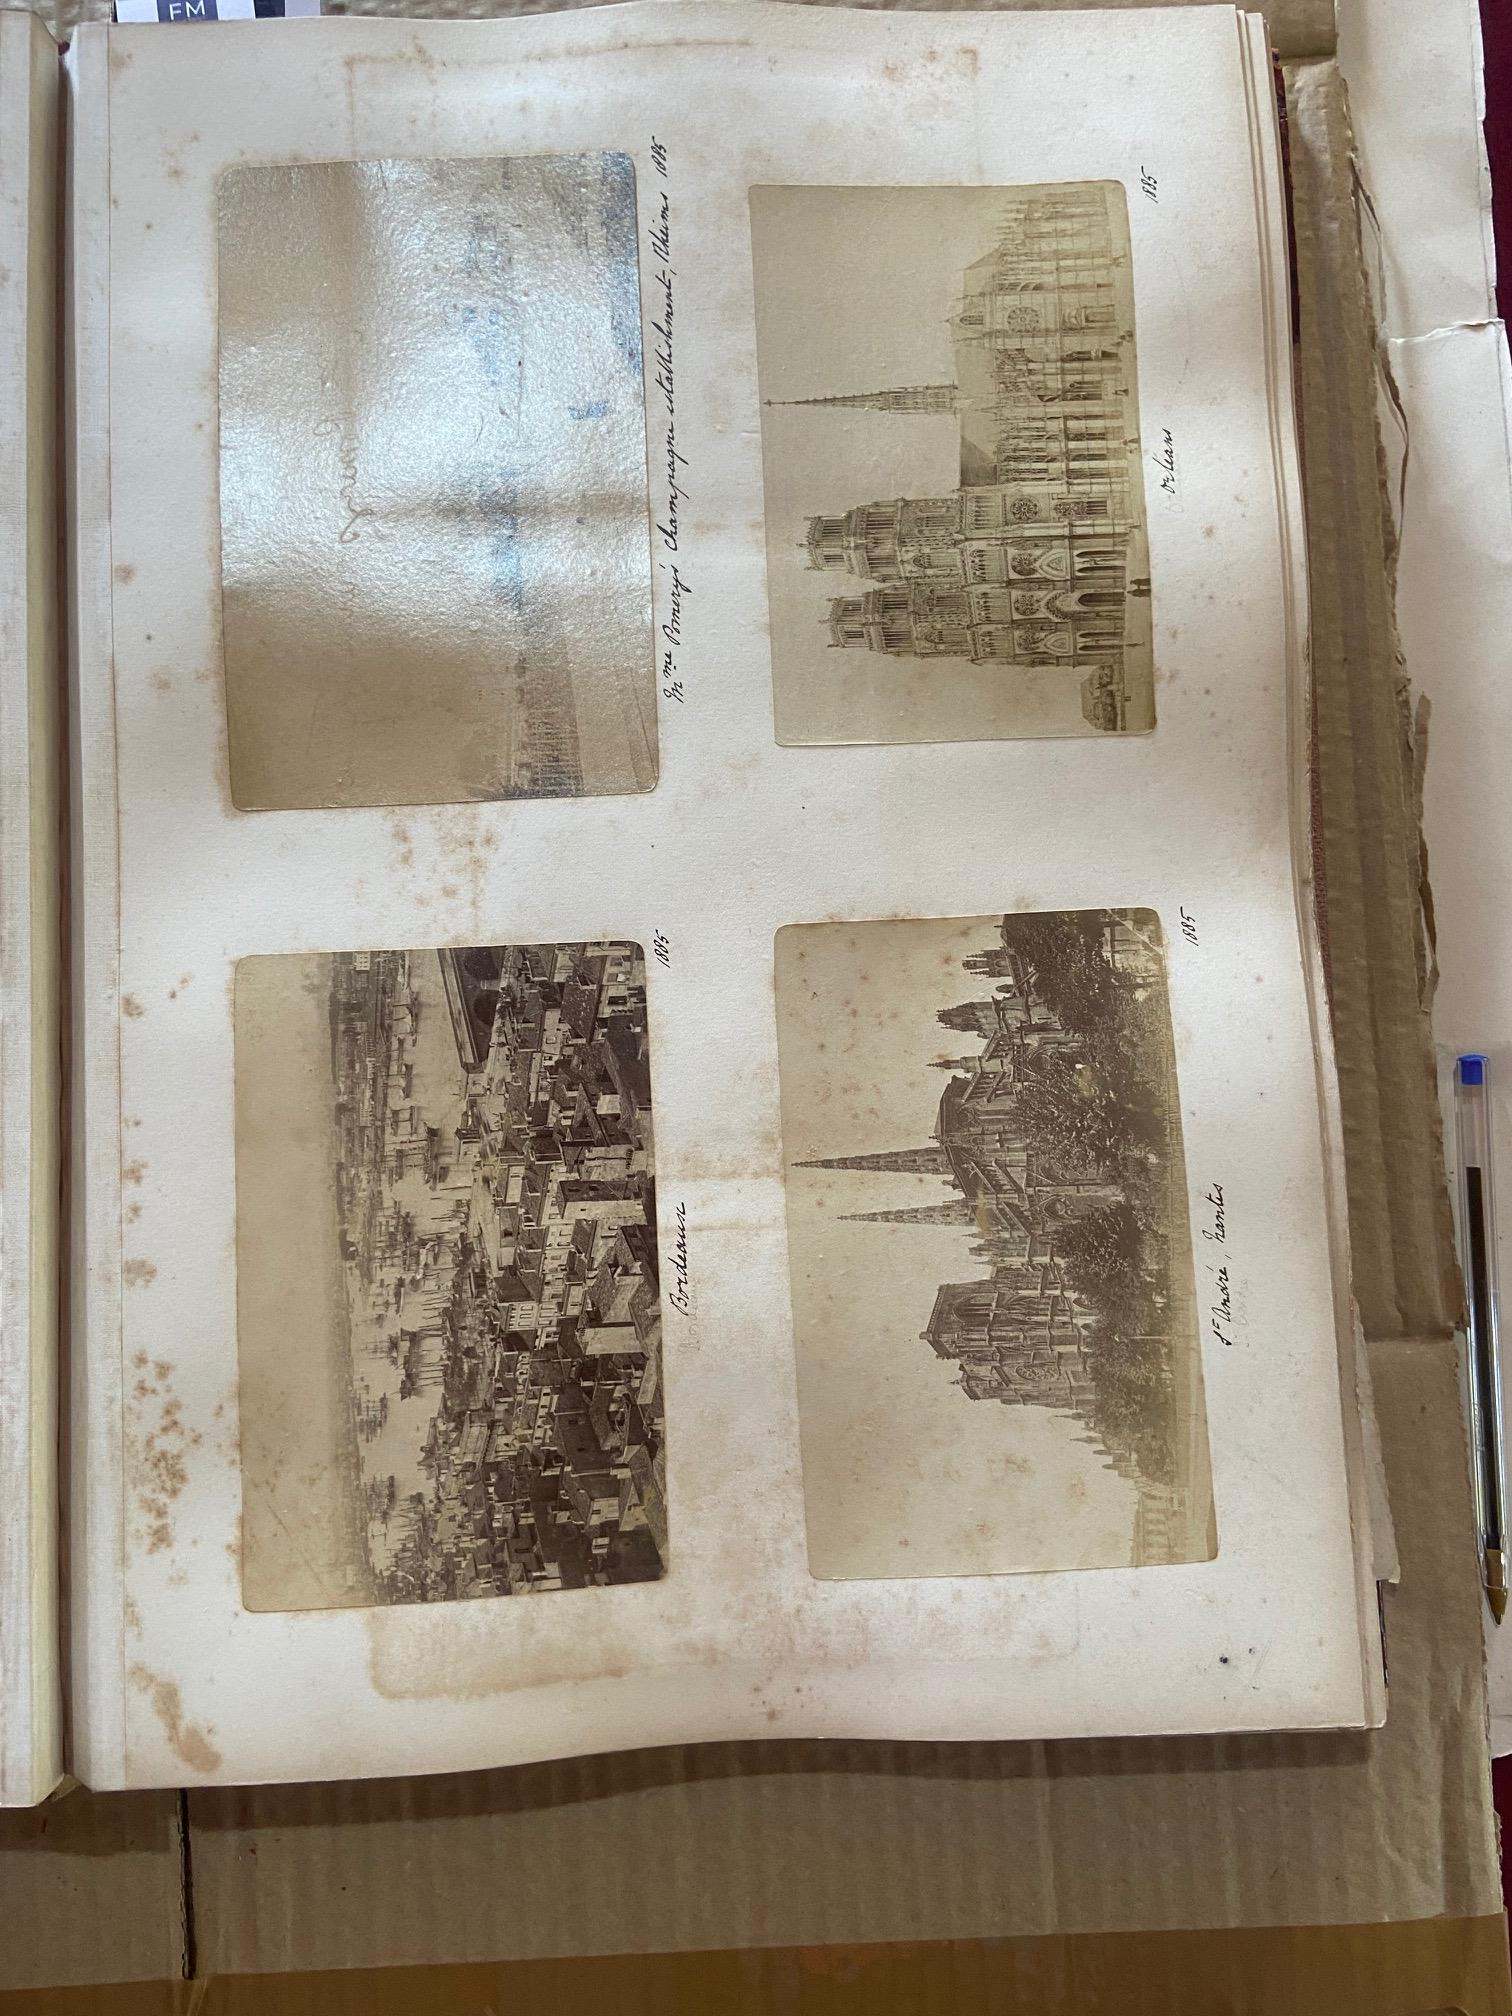 Photographs: Two large folio Albums of Photographs, each c. 1870 - 1890's. One Album contains - Image 24 of 31